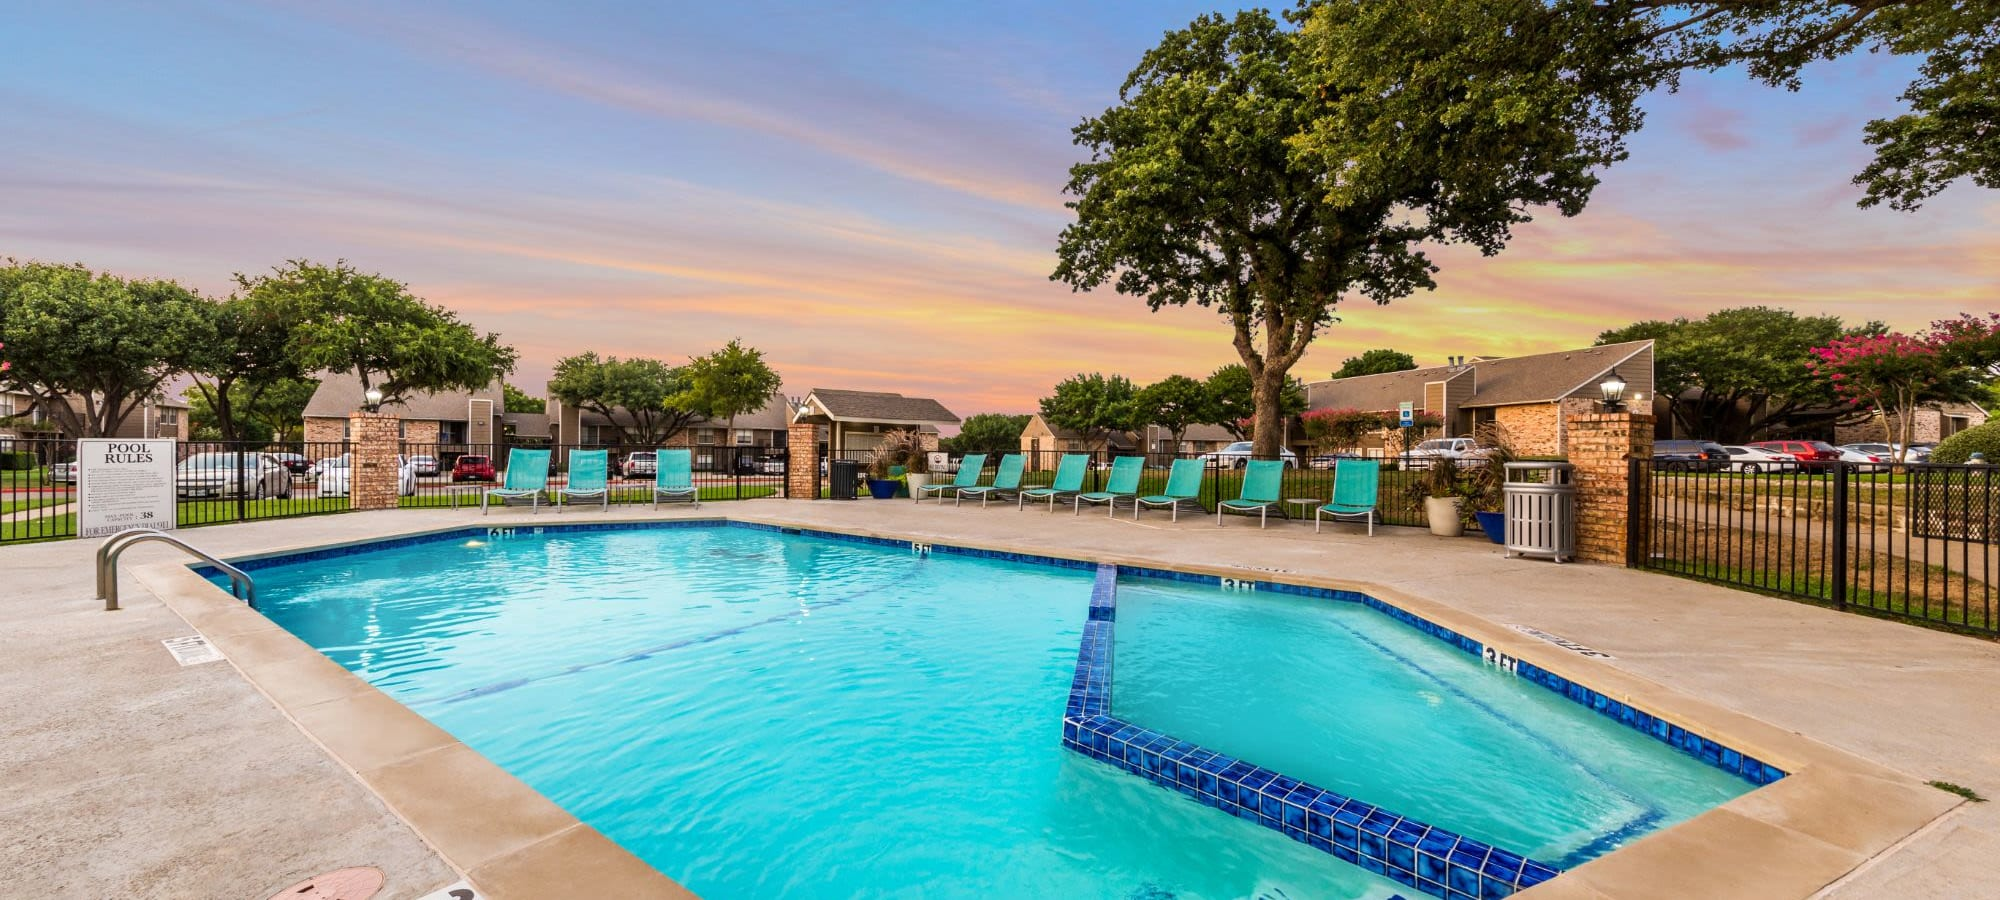 Schedule a tour of The Park at Flower Mound in Flower Mound, Texas